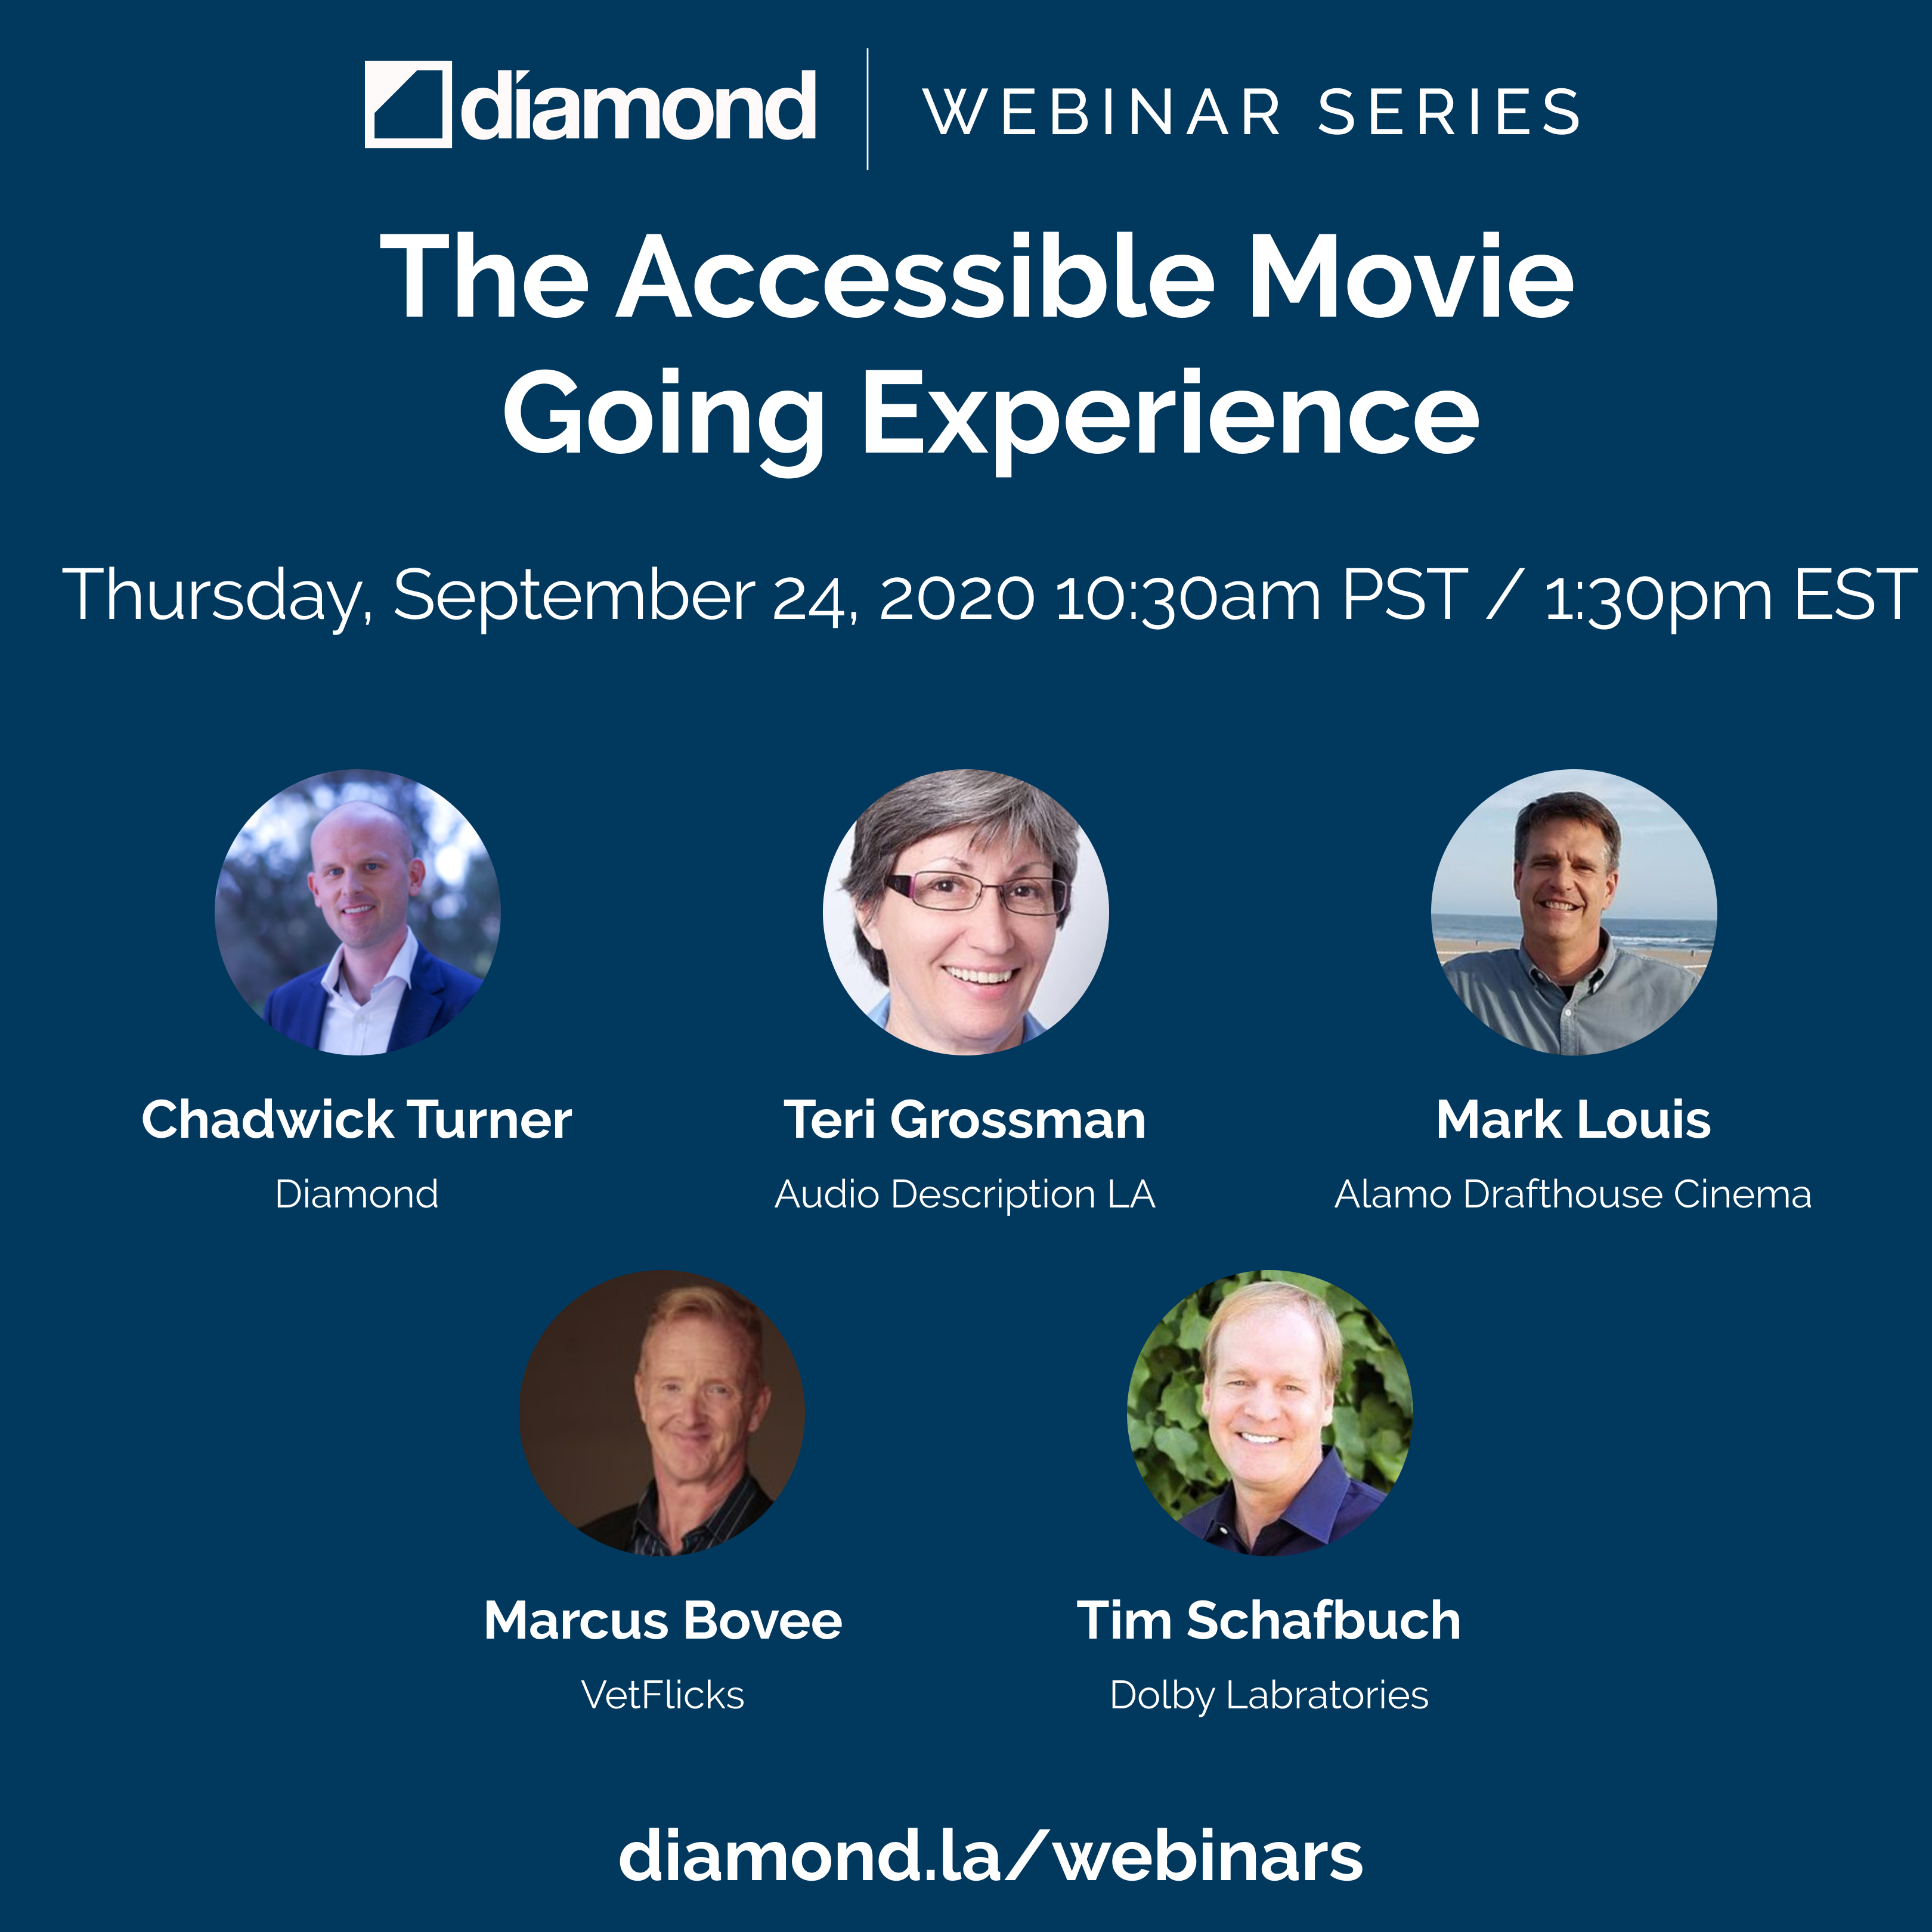 Diamond Webinar_The Accessible Movie Going Experience_September 24 2020_at 1030am pst, to register to go diamond.la/webinars